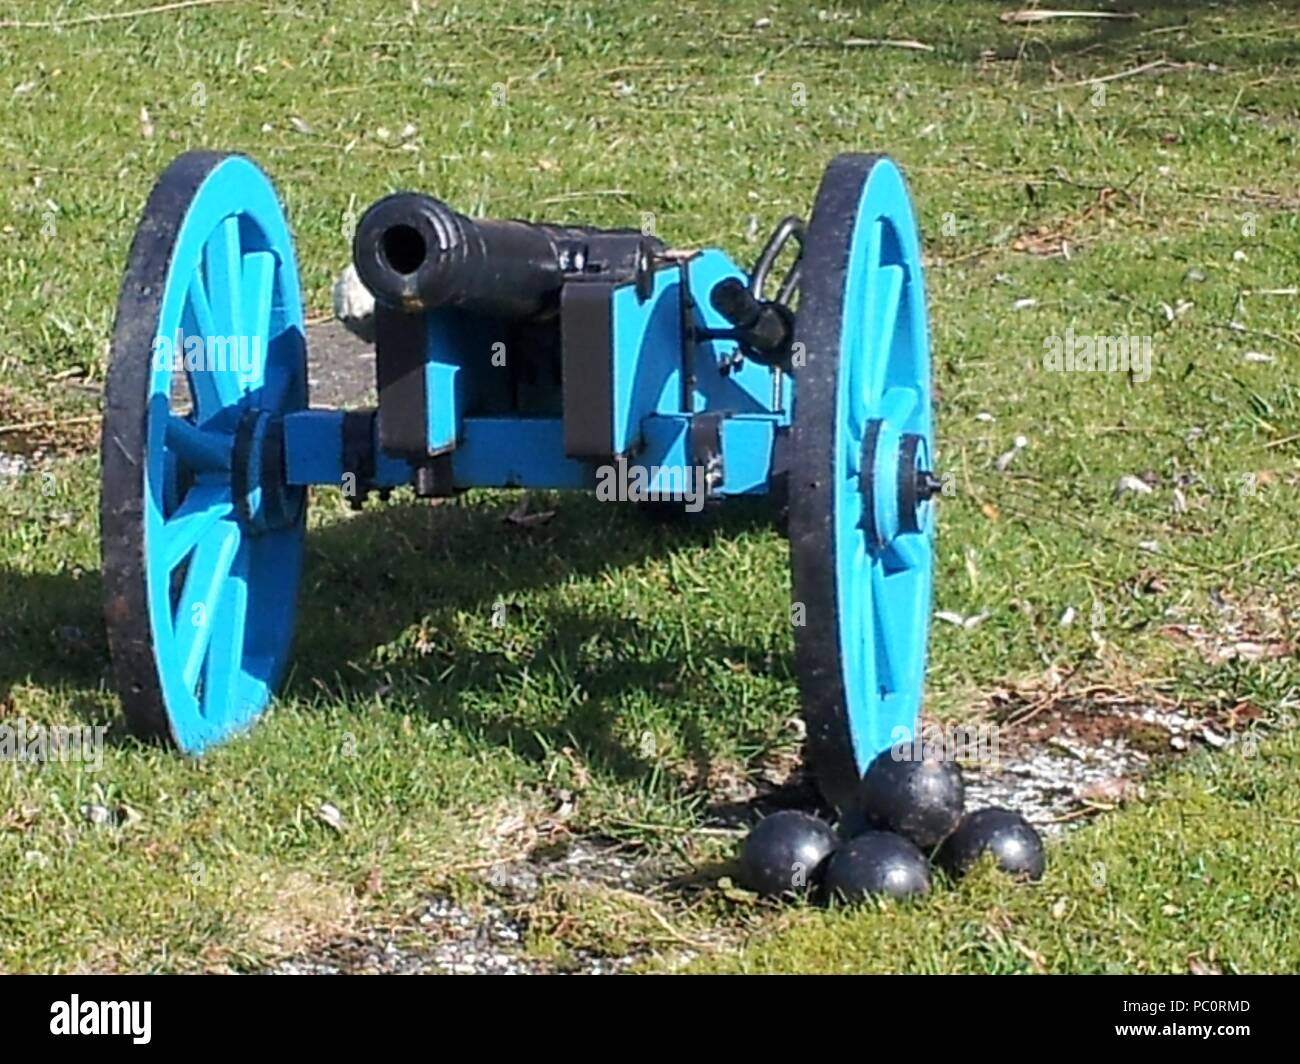 Wooden carriage on wheels with cannon and cannonballs - Stock Image